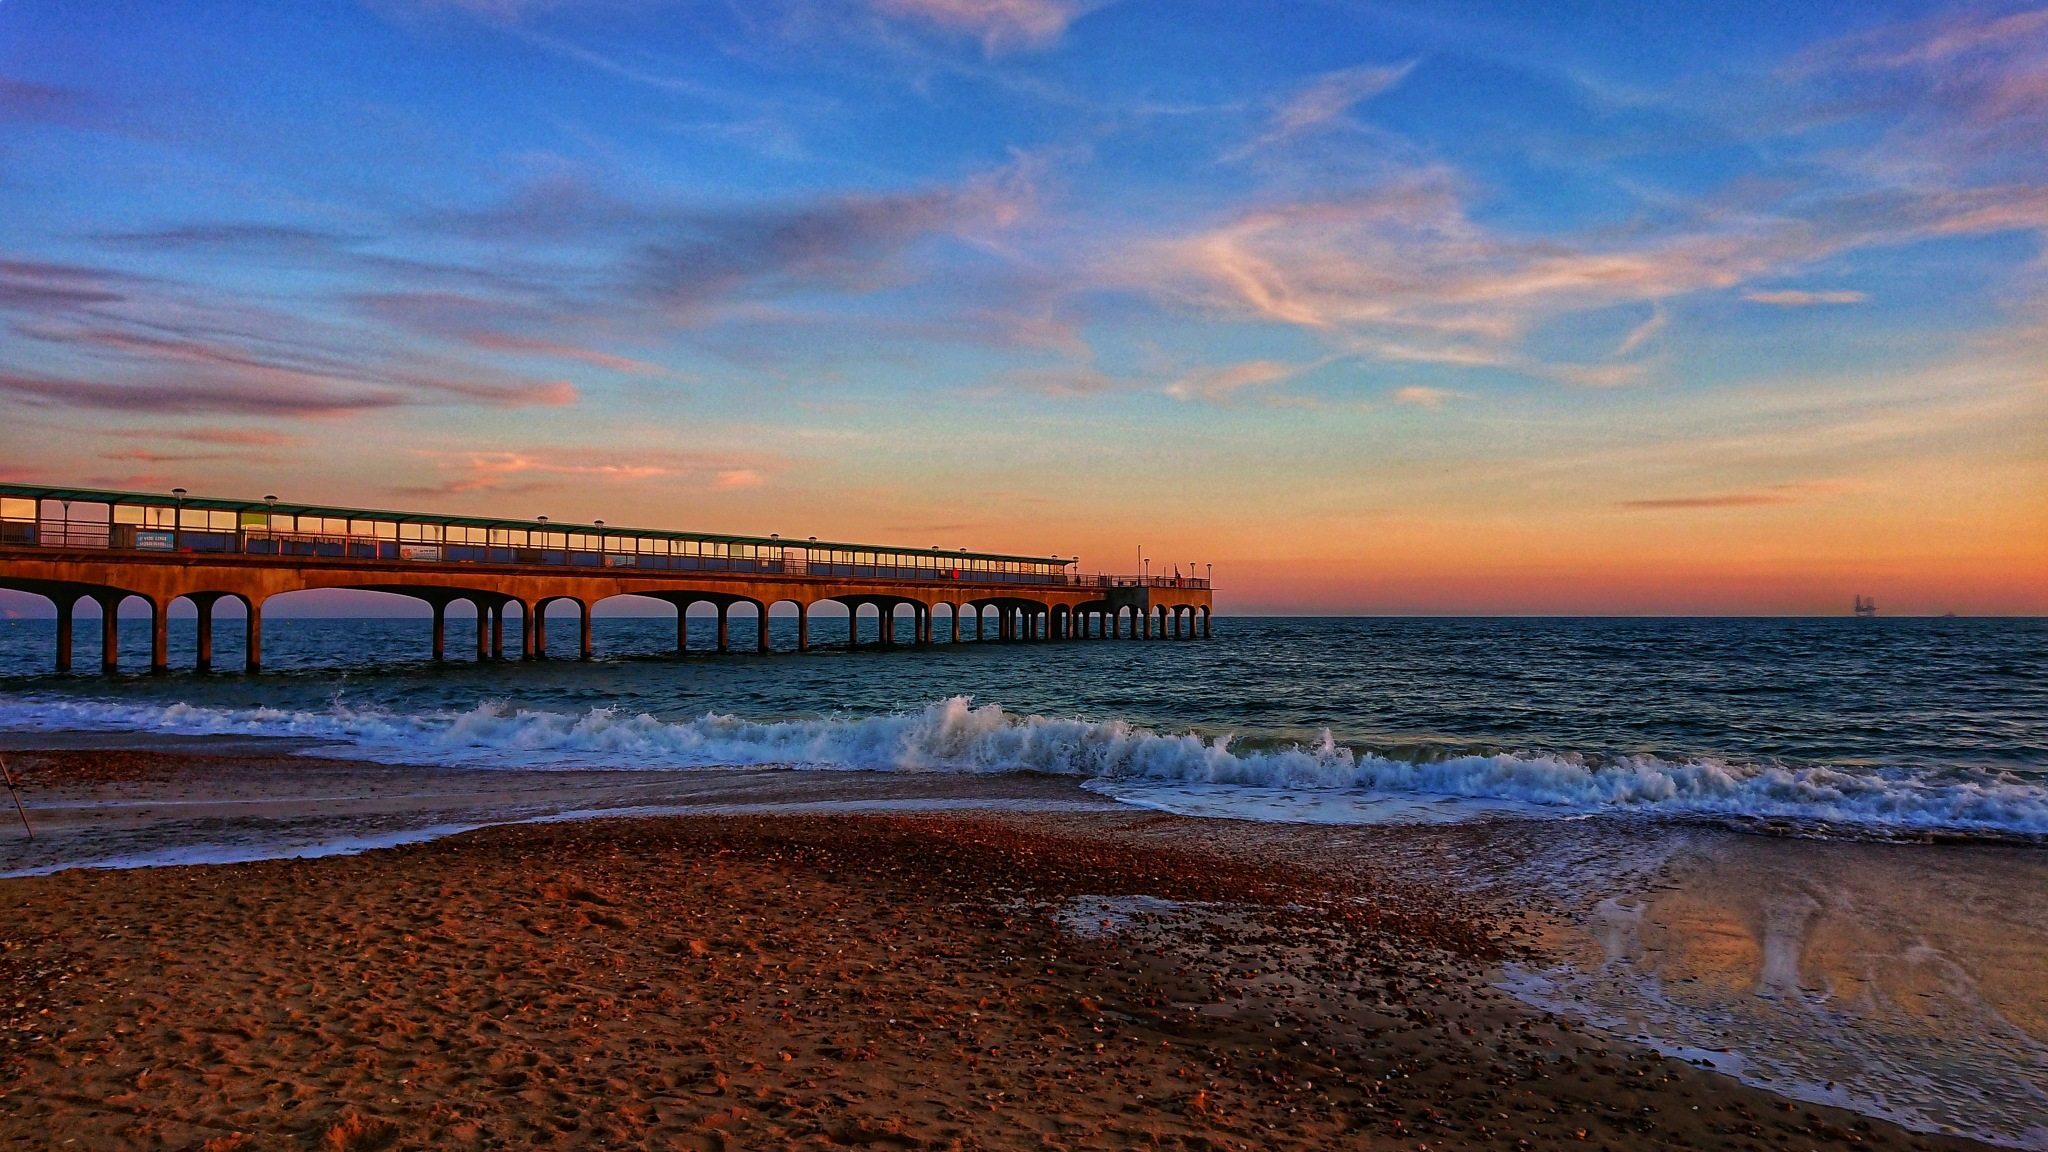 I love sunsets by Marlena